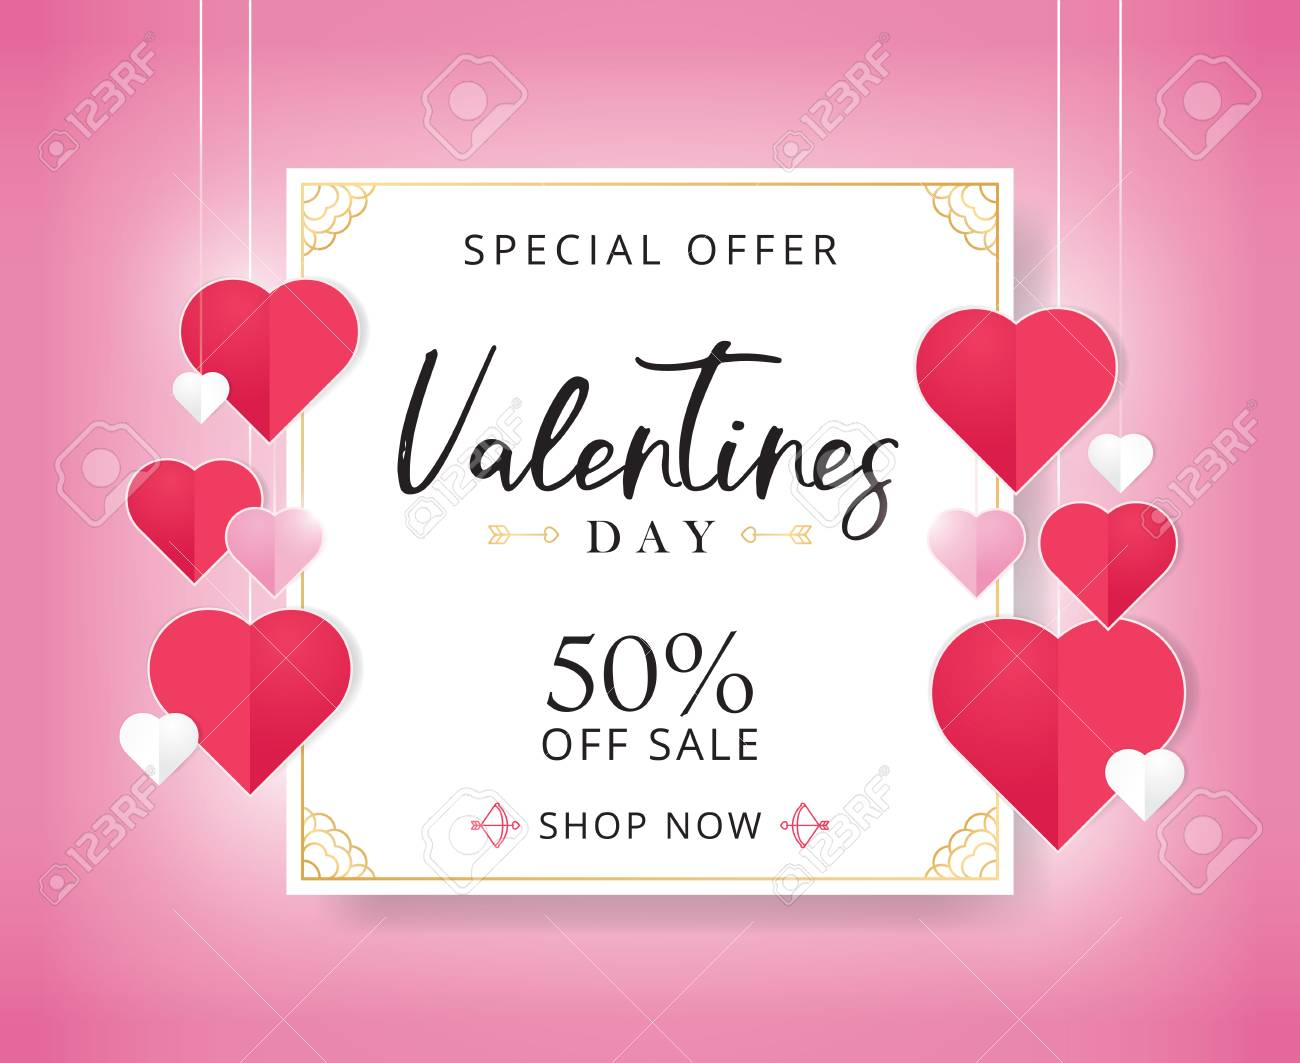 Valentines Day Sale Background With Heart Shaped Flyer Template